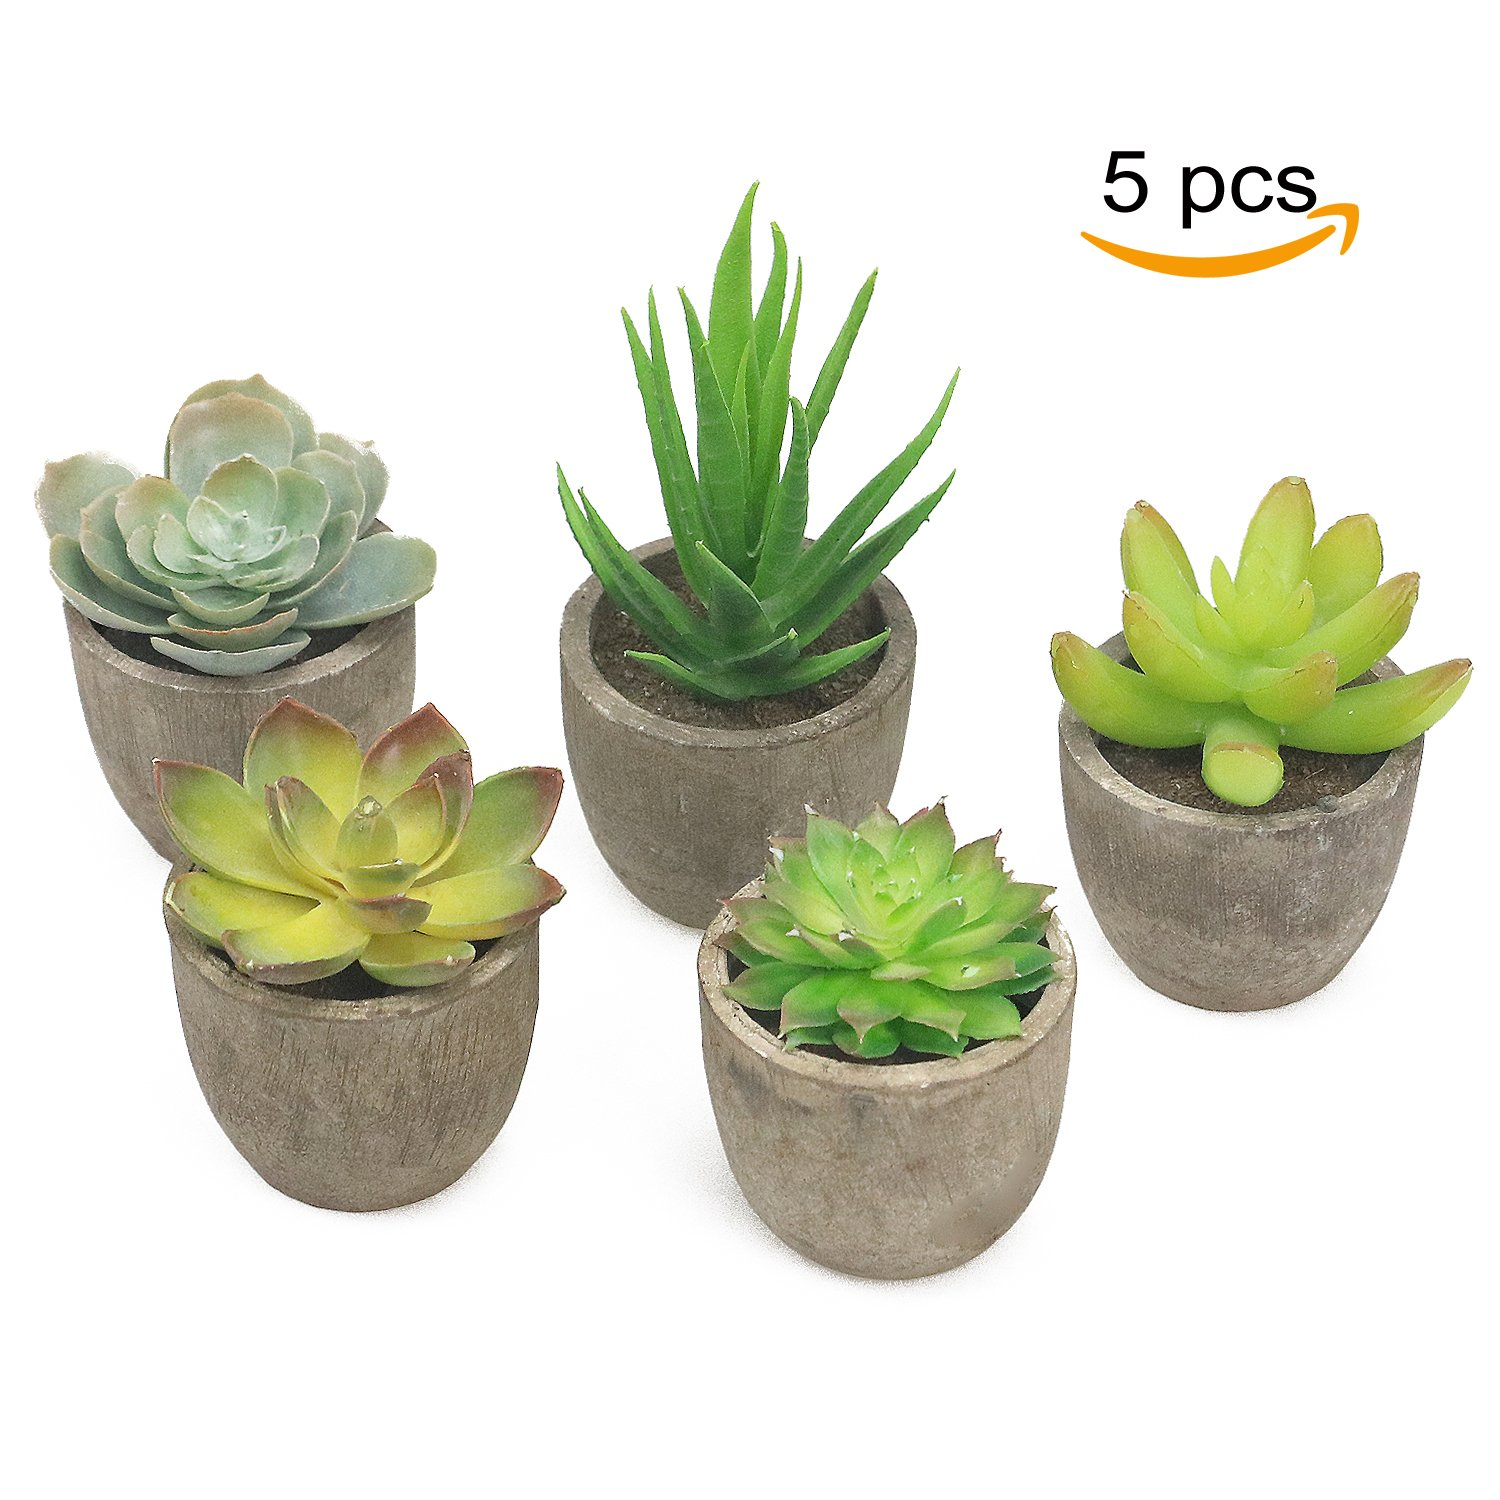 galleon artificial succulents plants fake potted cactus faux cacti green for home indoor. Black Bedroom Furniture Sets. Home Design Ideas